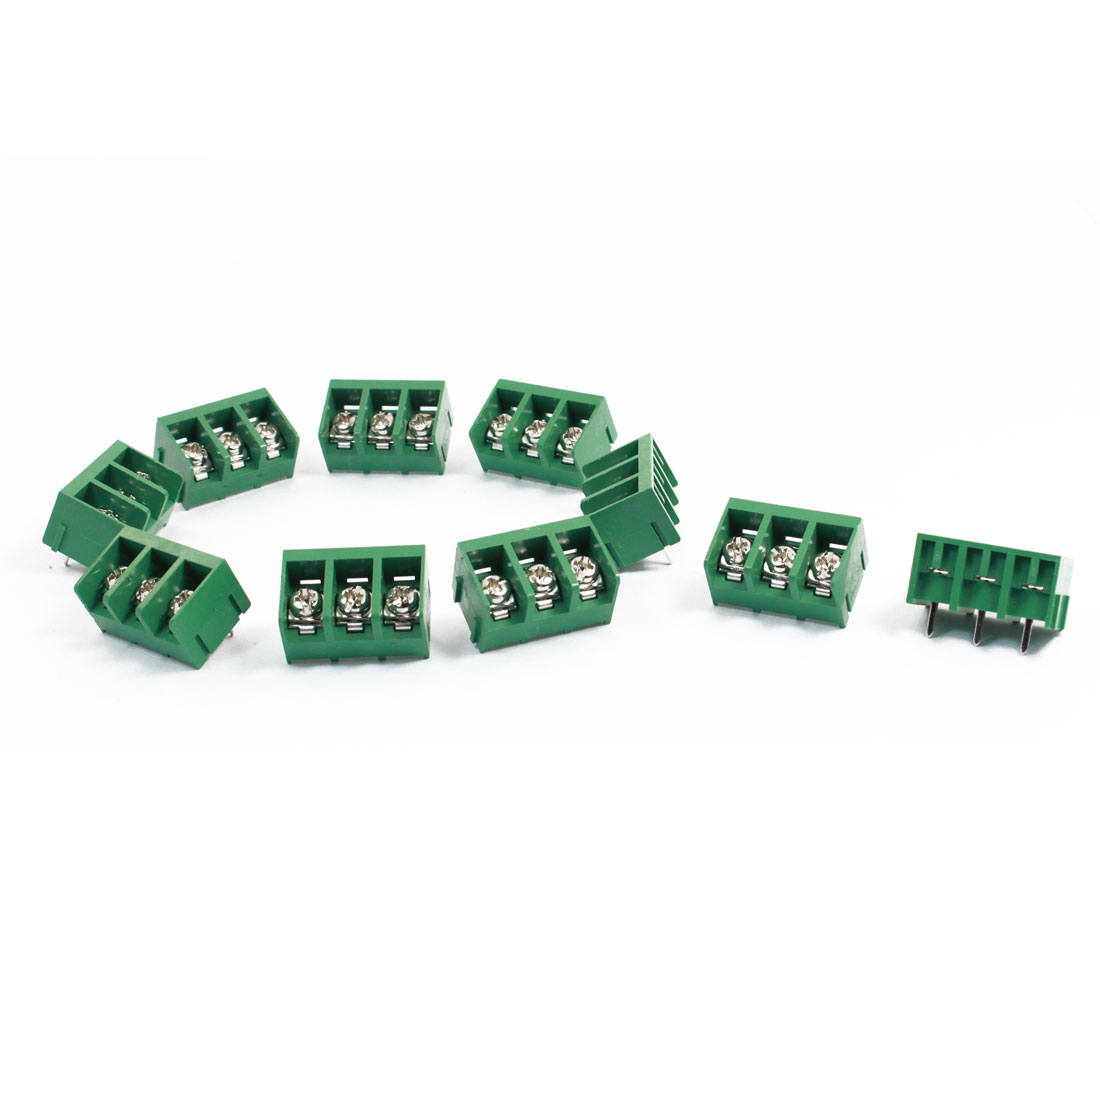 10 Pcs 9.5mm Pitch 3 Position 300V 30A Terminal Block Green